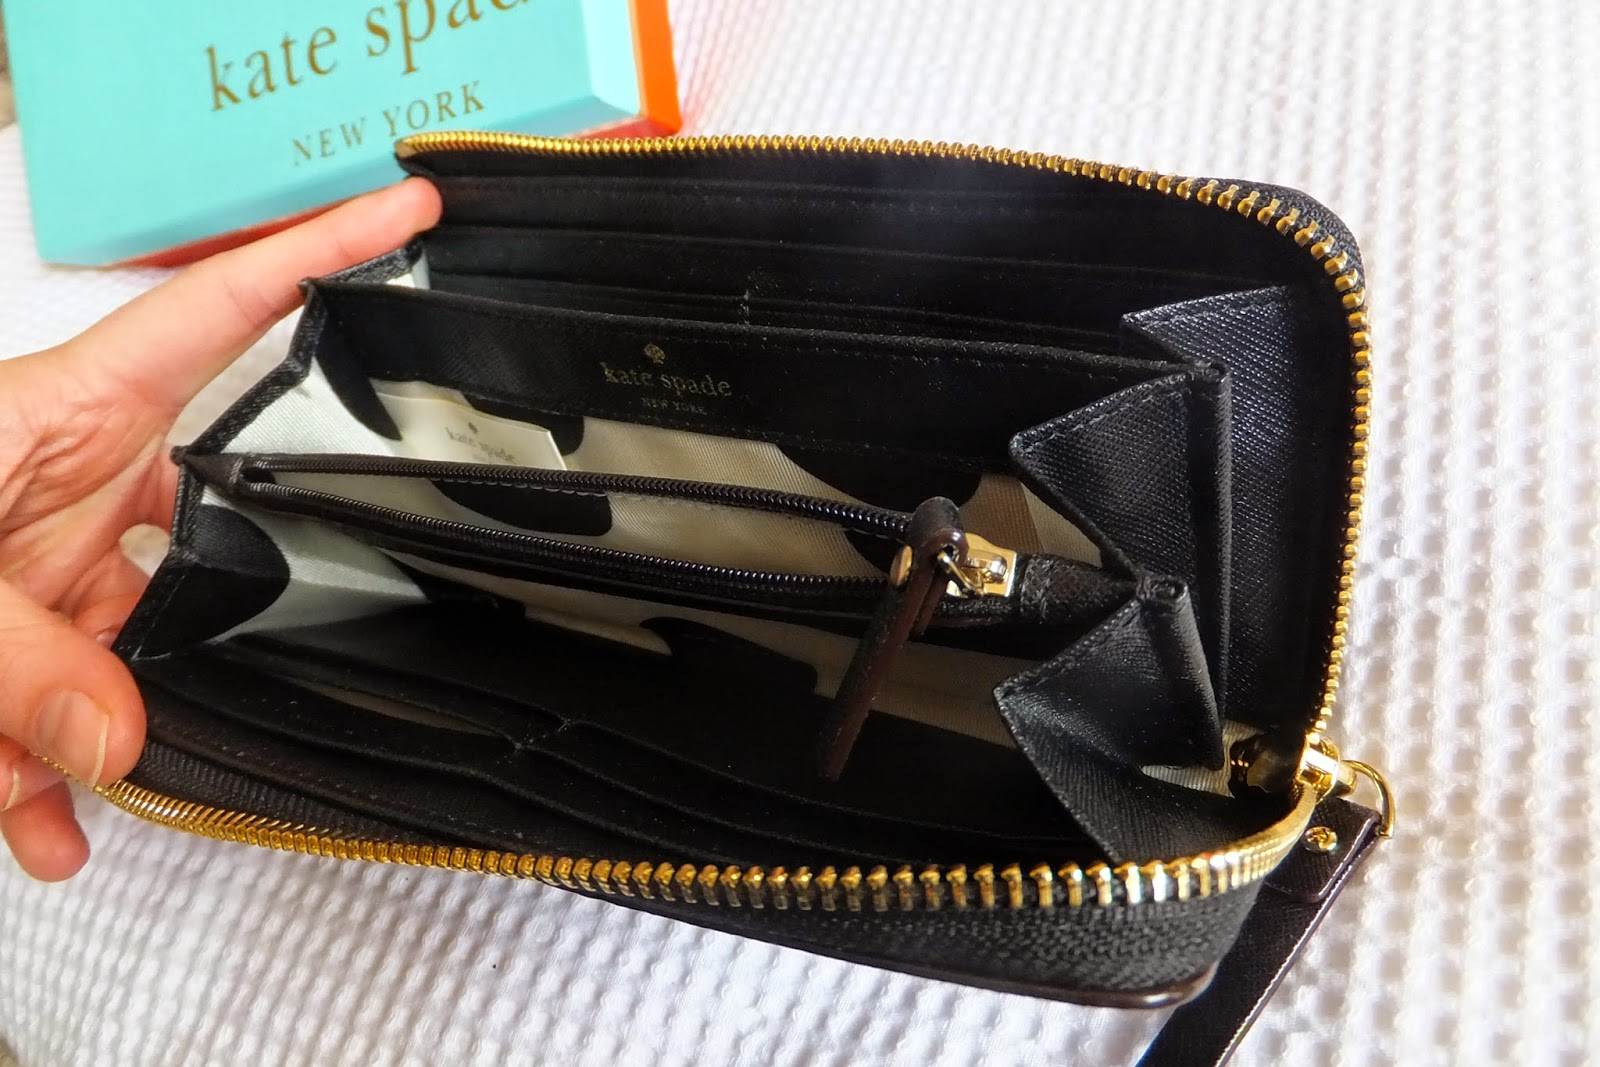 Kate Spade, Purse, Cedar Street, Nisha, Review, Black